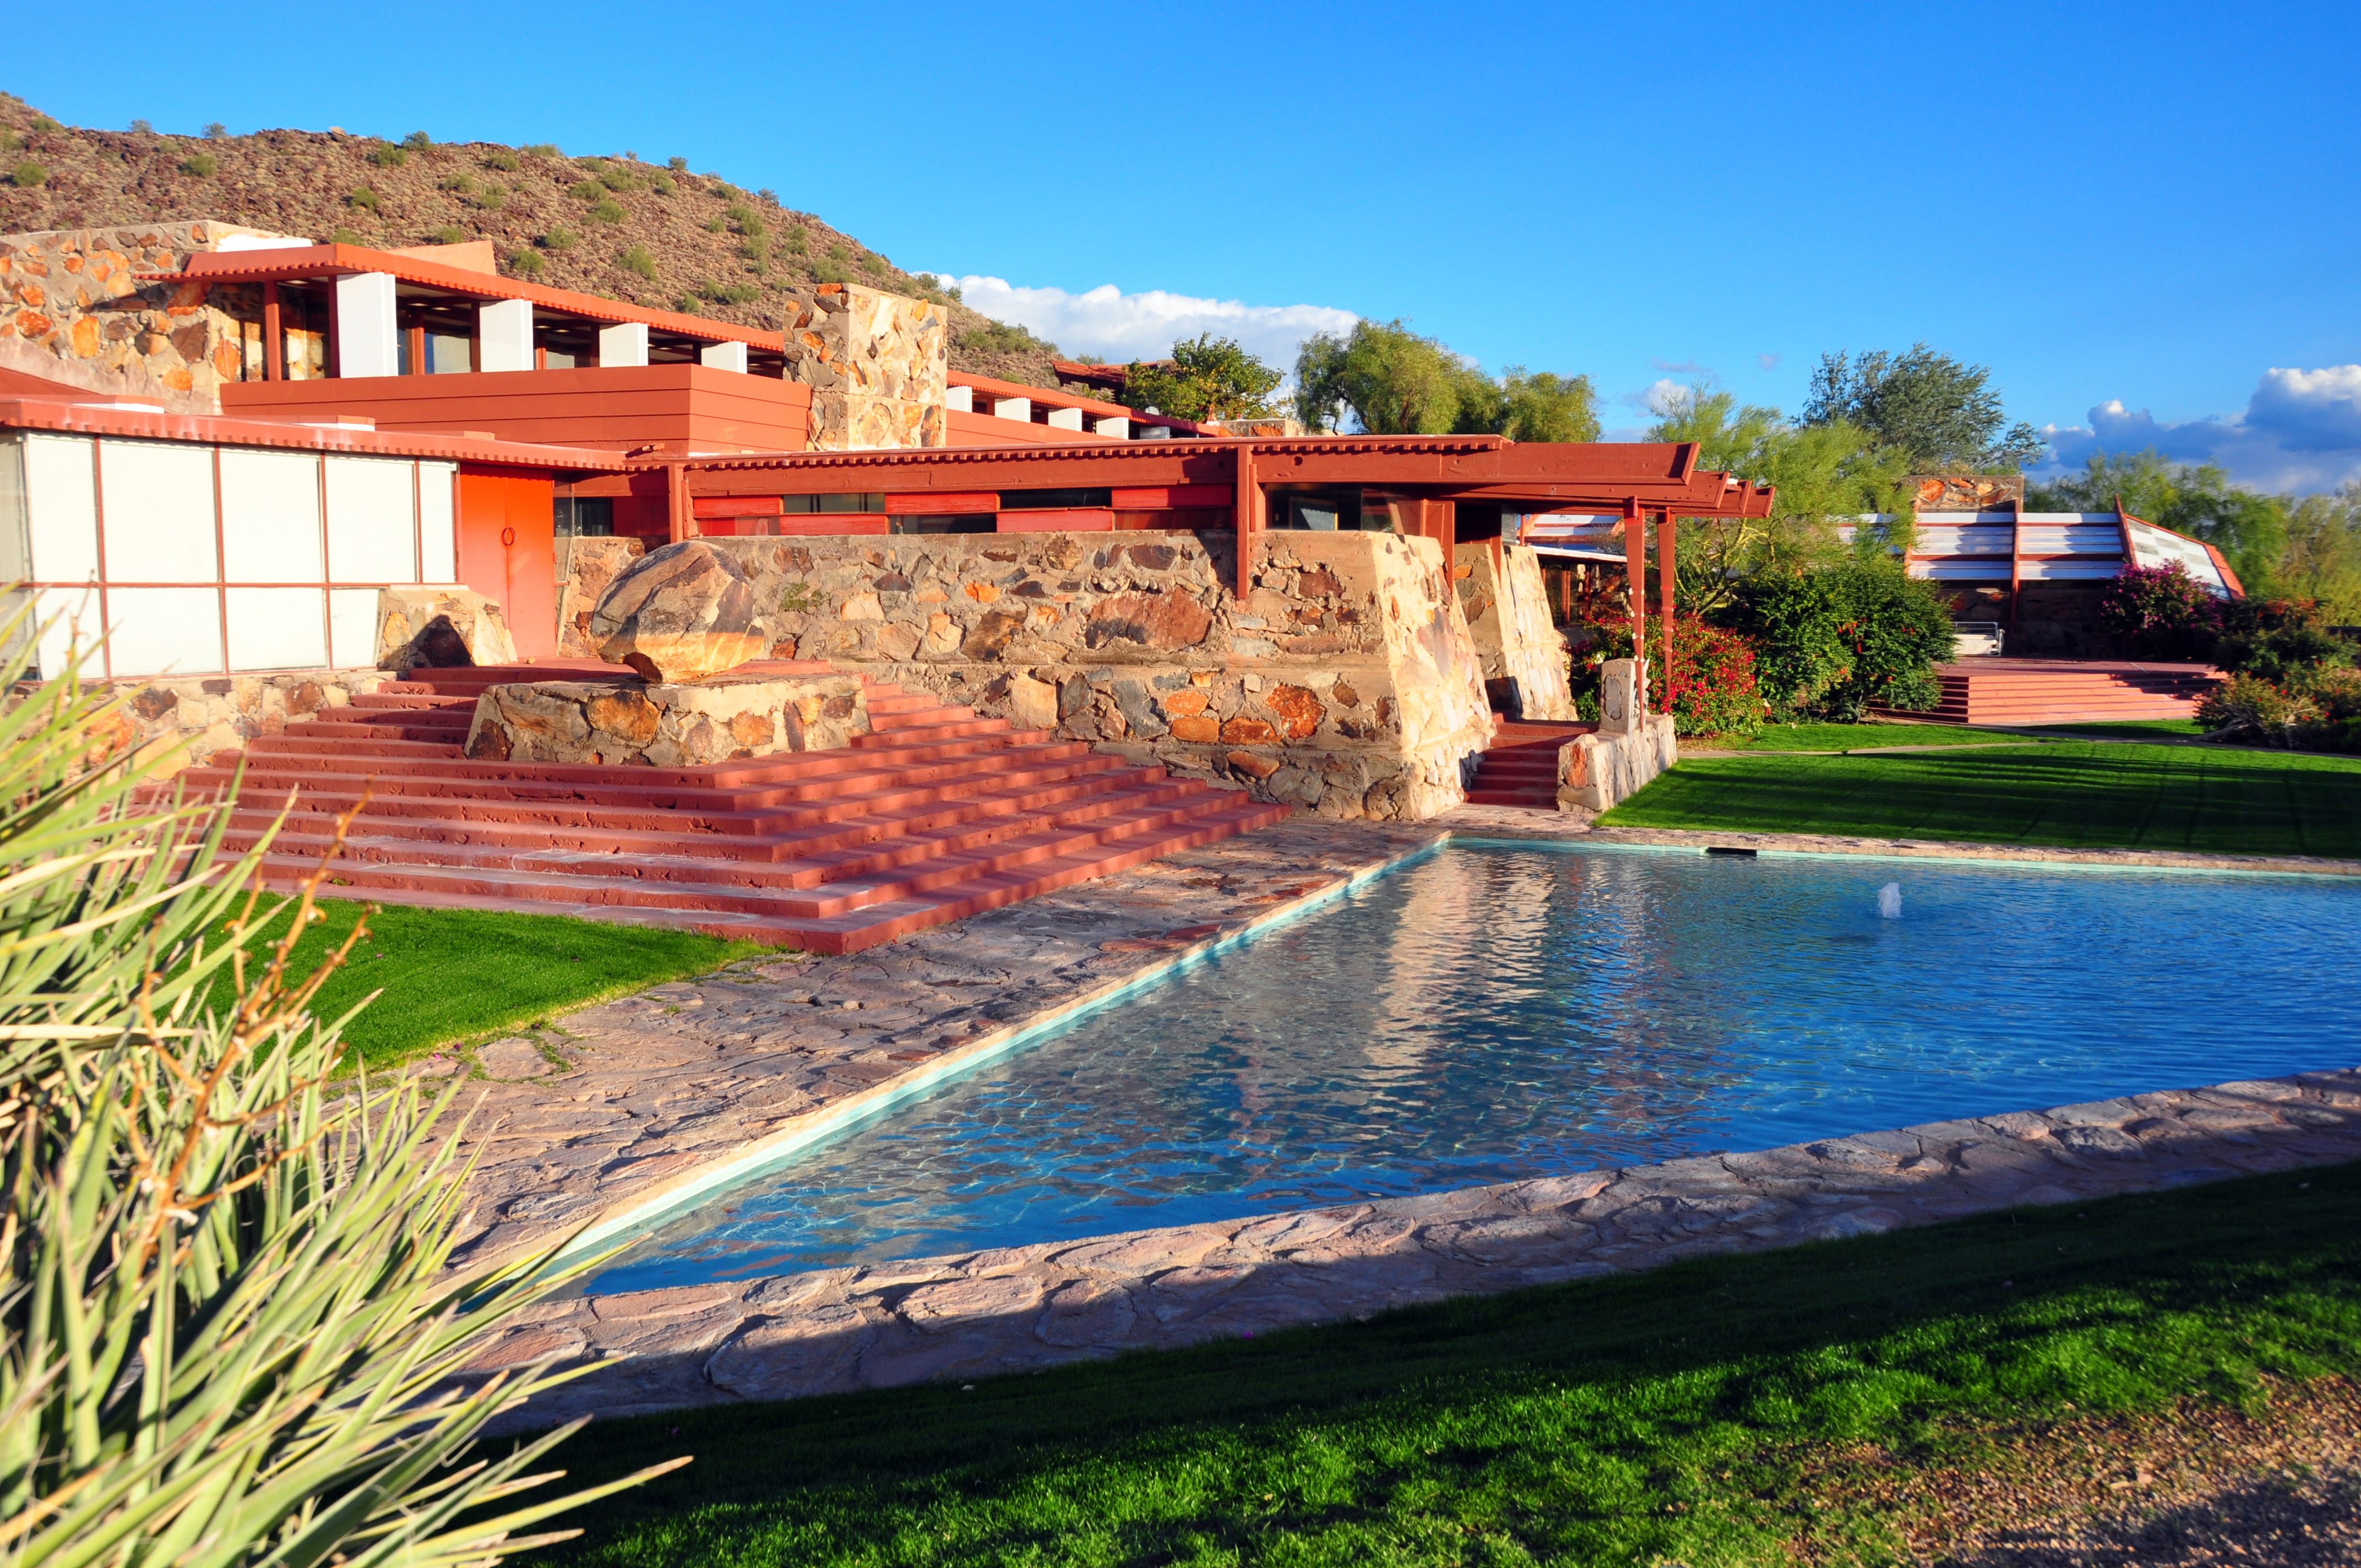 the work of frank lloyd wright in building taliesin west Touring the arizona legacy of frank lloyd wright living room at frank lloyd wright's taliesin west building is another wright project designed for.